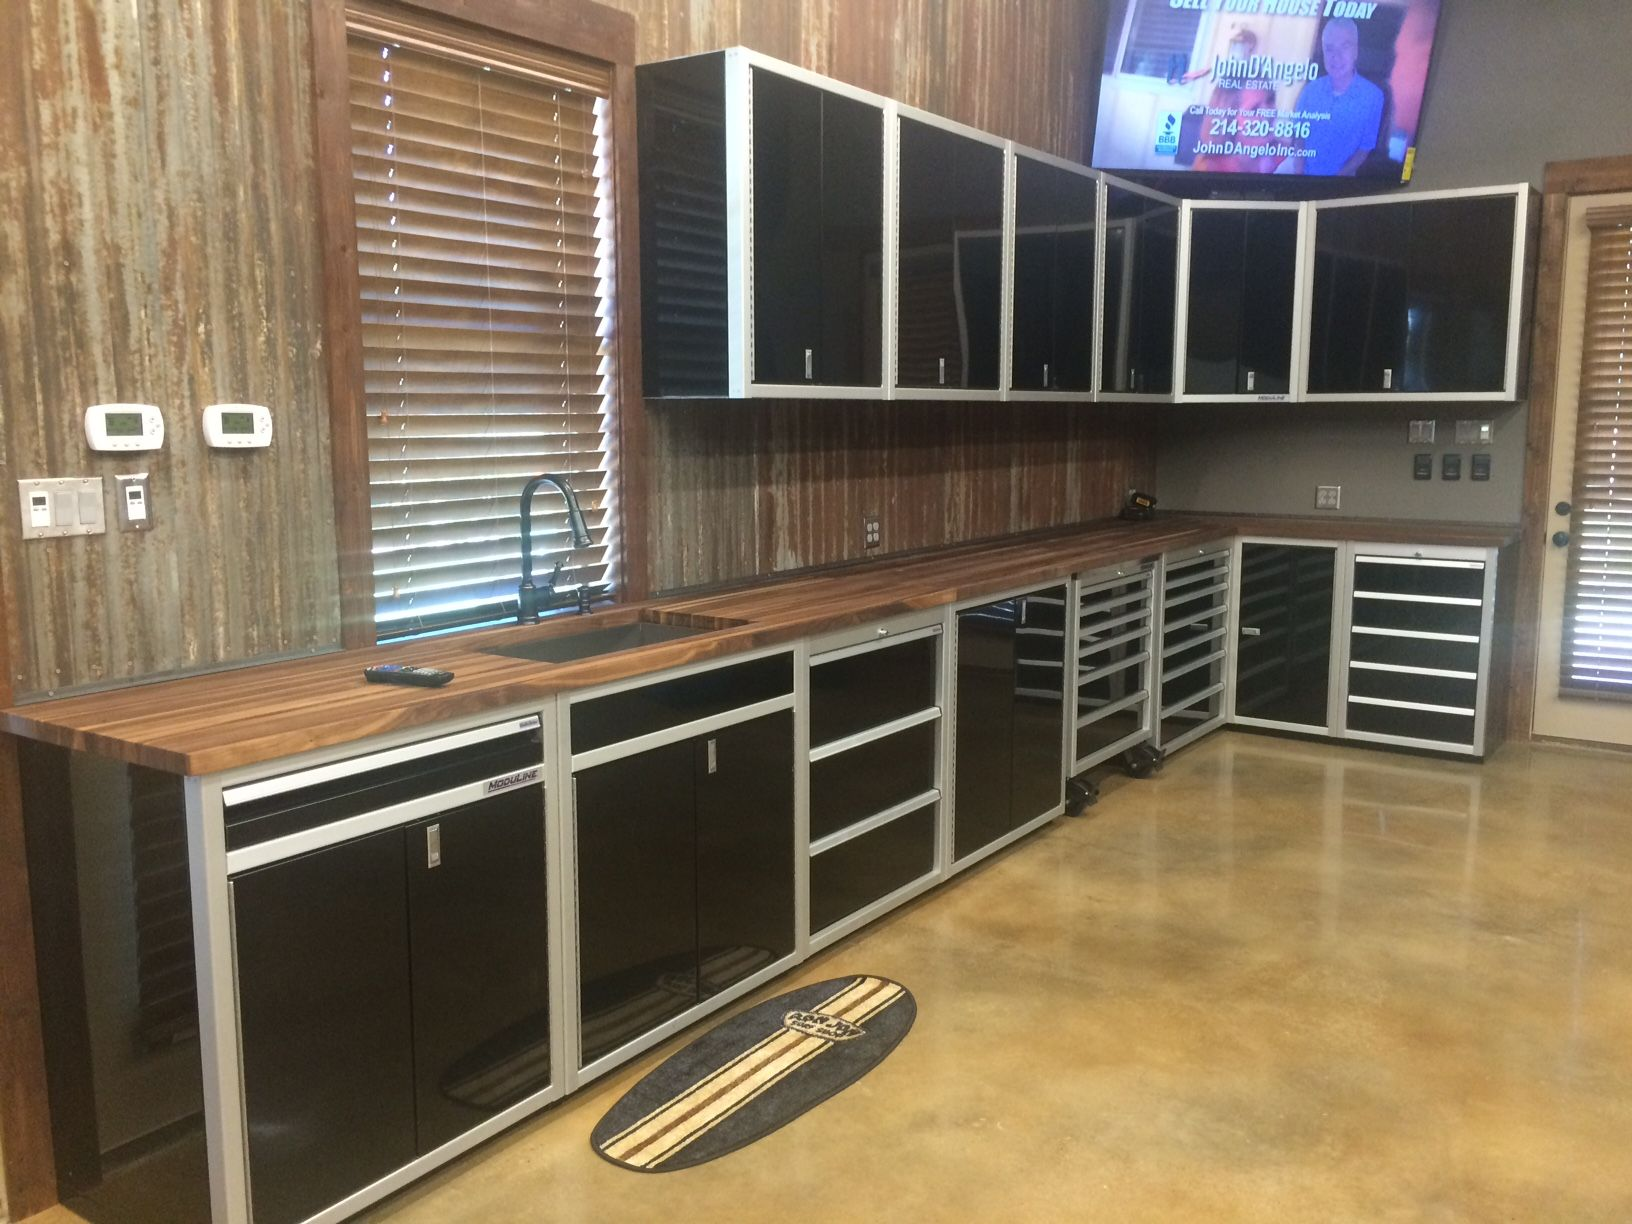 Lovely Moduline Cabinets In A Garage In Texas. Black Aluminum Cabinets. Butcher  Block Counter Top